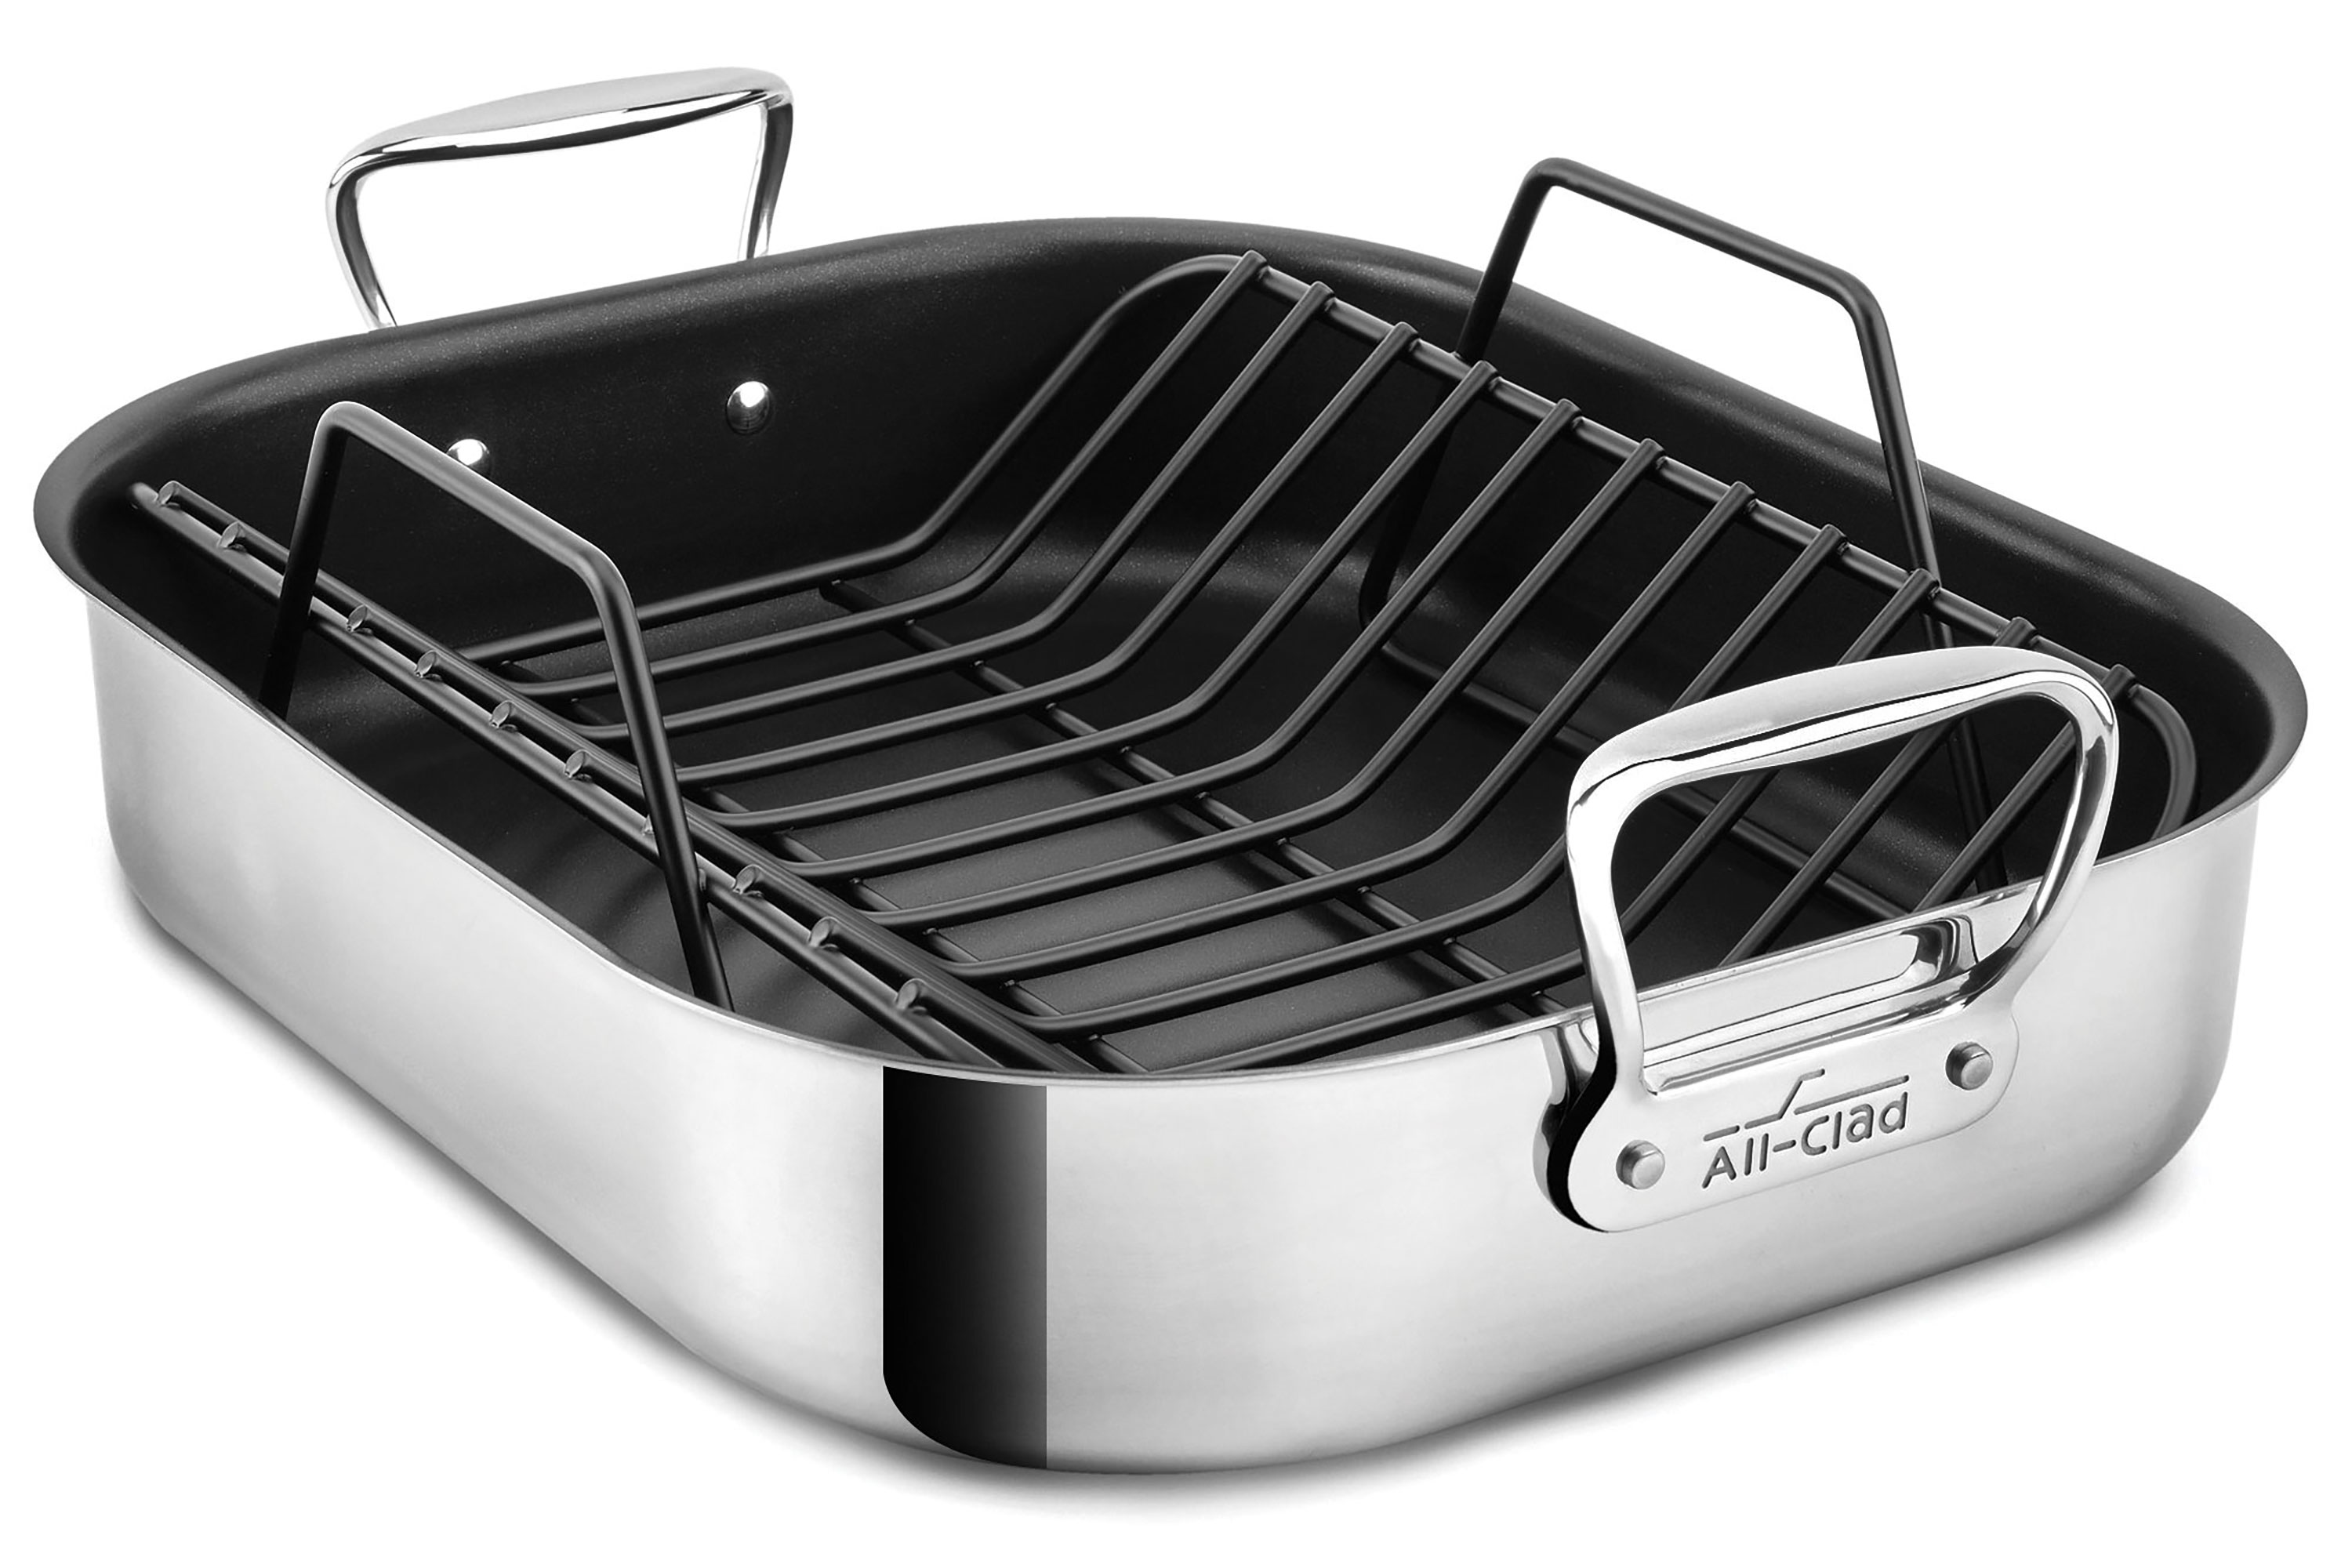 All Clad Nonstick Roasting Pan With Rack 16x13 Quot Cutlery